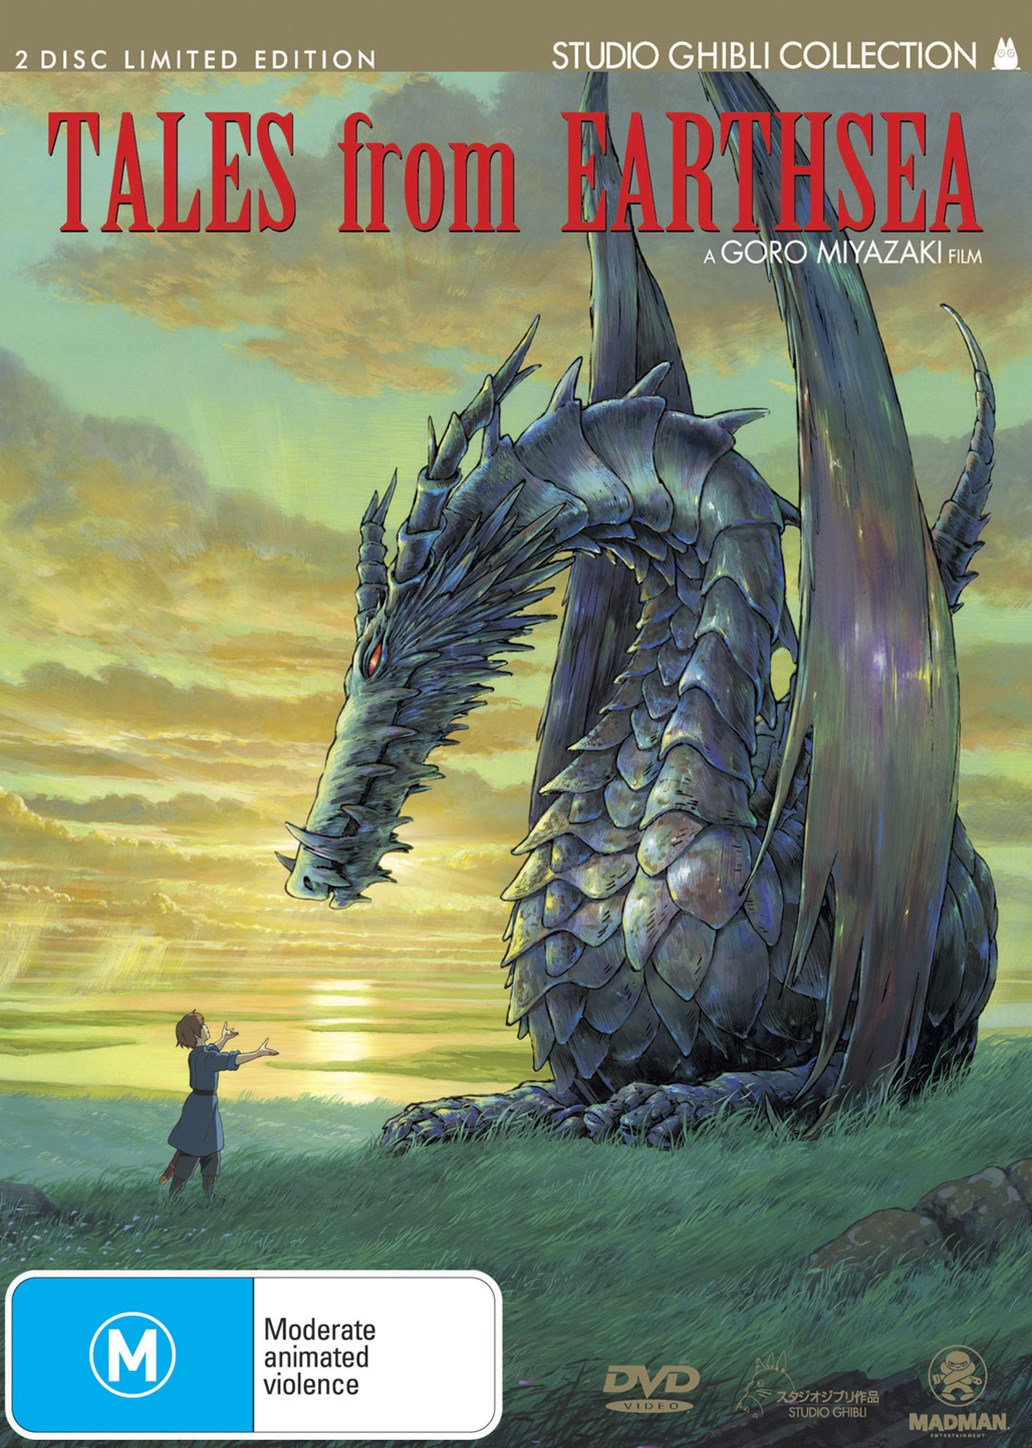 Tales from Earthsea (2 Disc Set)